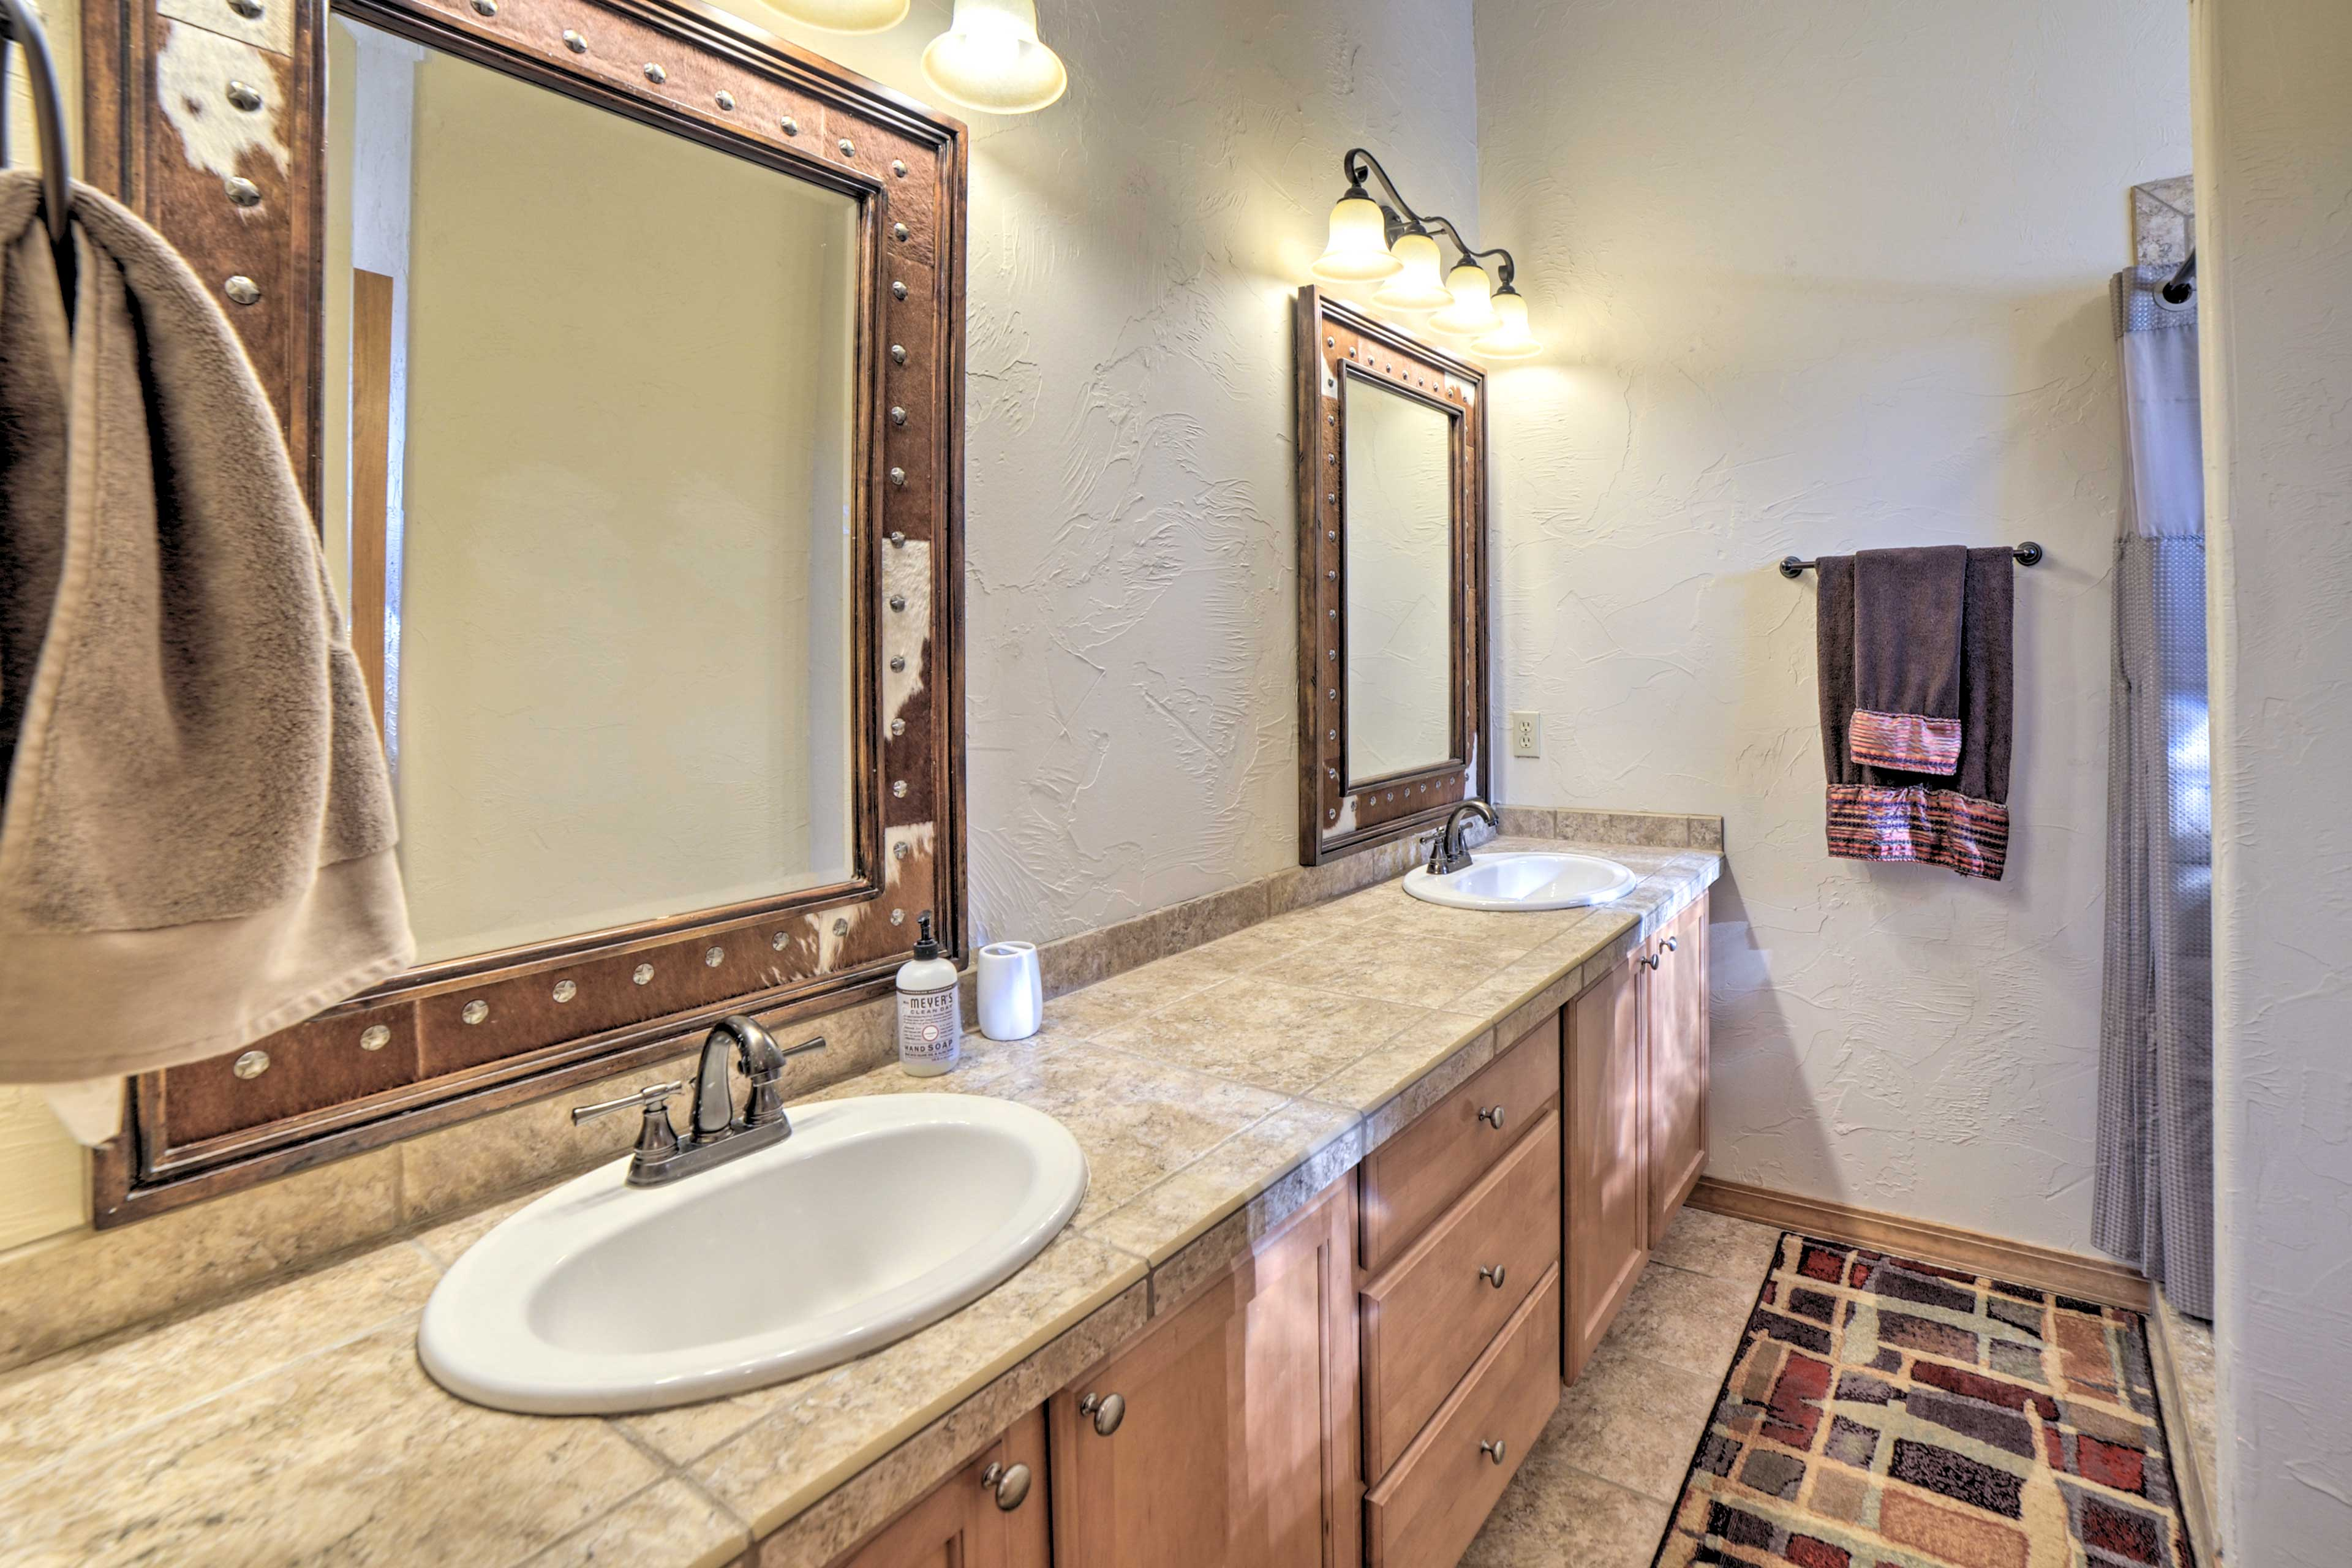 The double sinks and large vanity are great for couples getting ready.